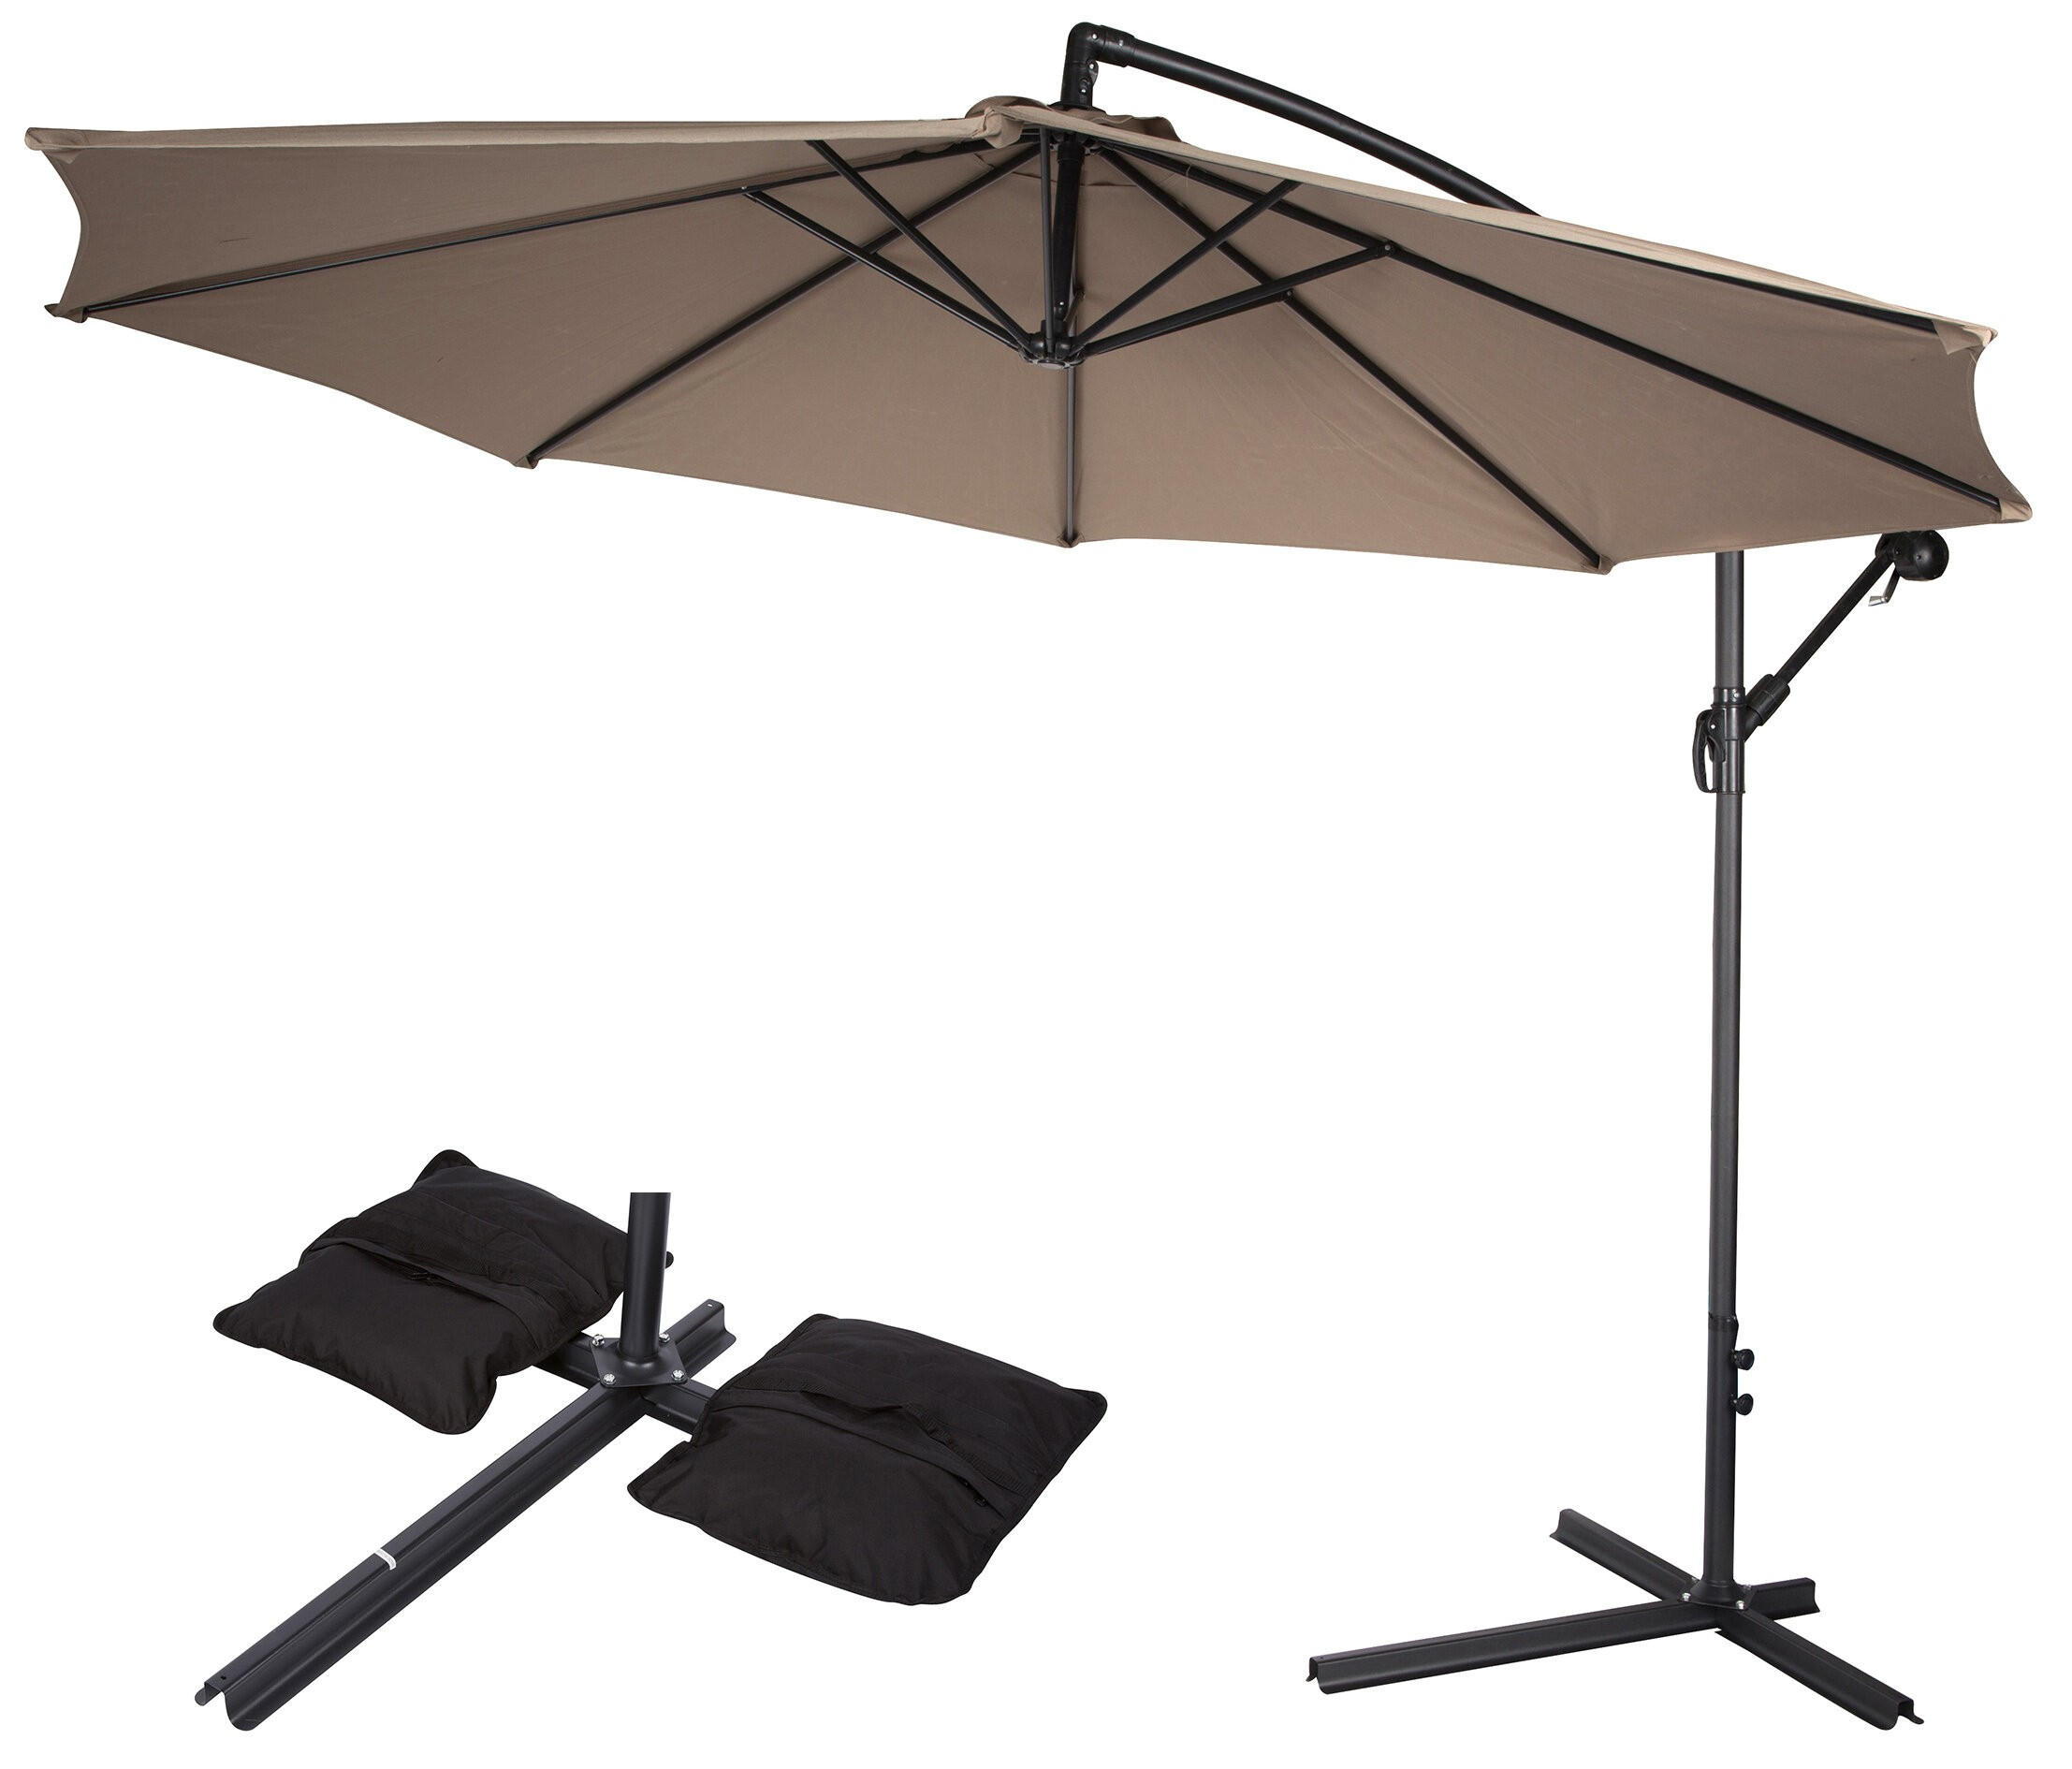 10' Deluxe Patio Umbrella